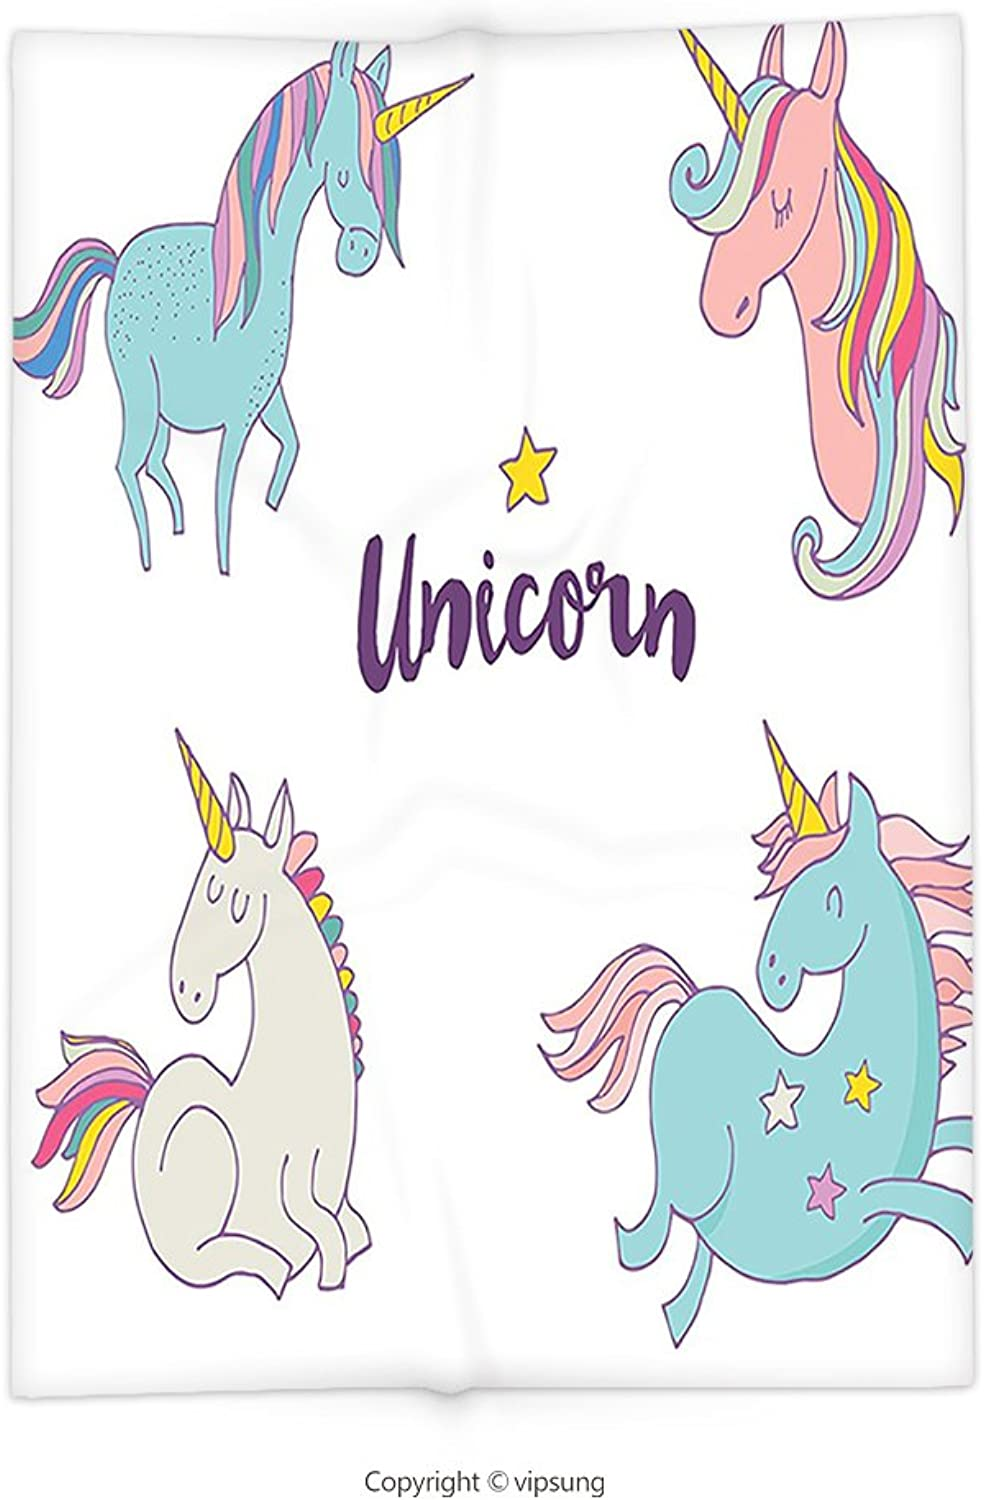 Vipsung Throw Blanket with Unicorn Home and Kids Decor Different Unicorn Female Charm Believe Wish Sublime Animal Concept Multi Super Soft and Cozy Fleece Blanket